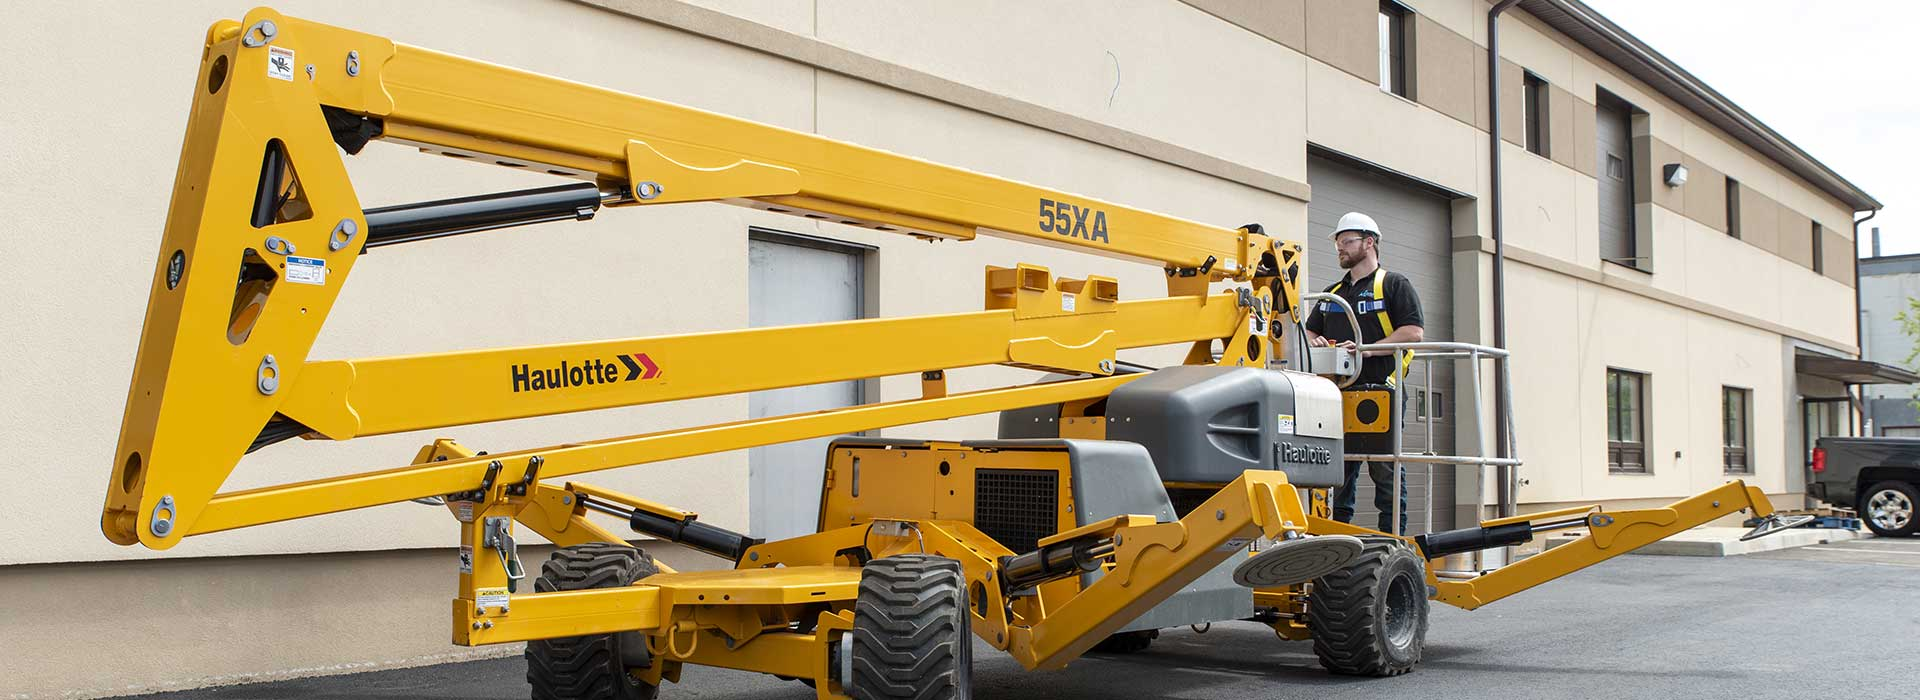 Rent Construction Equipment in Westmont Illinois